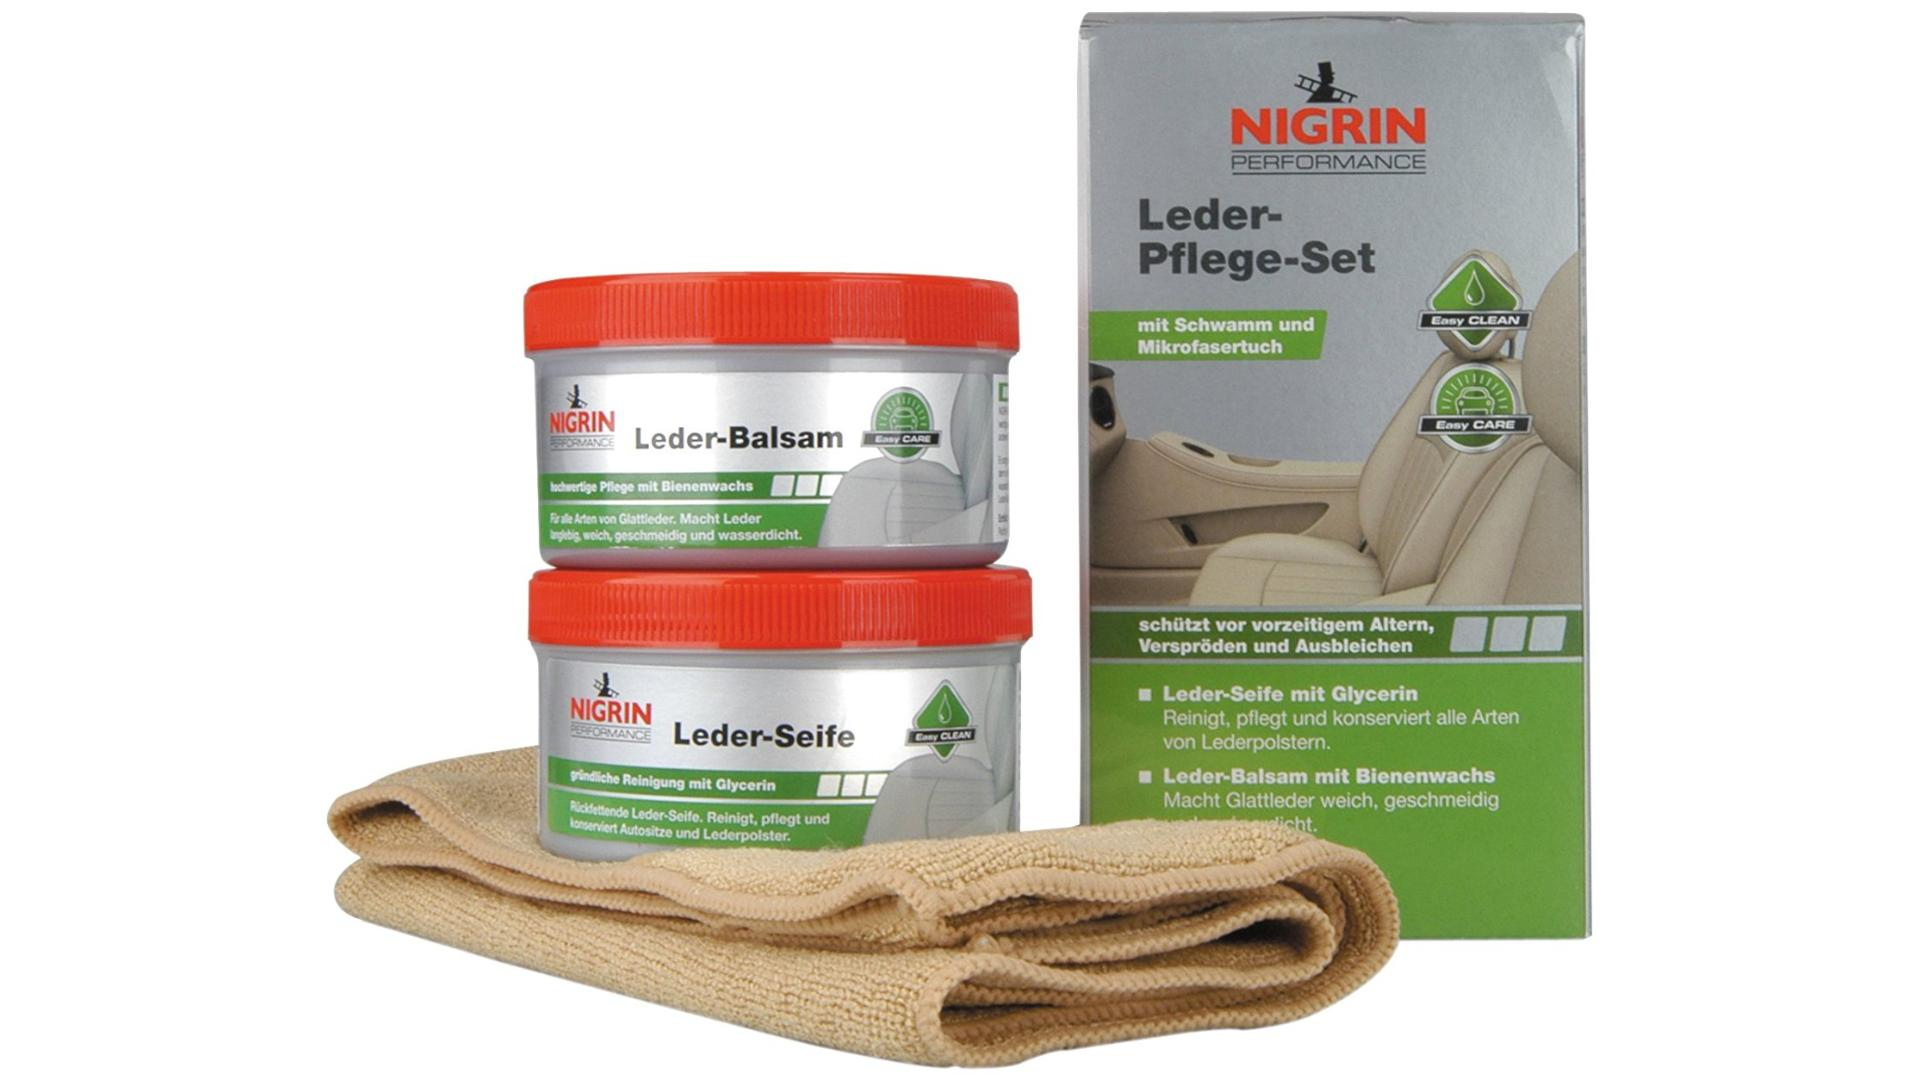 NIGRIN Soap preparation and leather balm